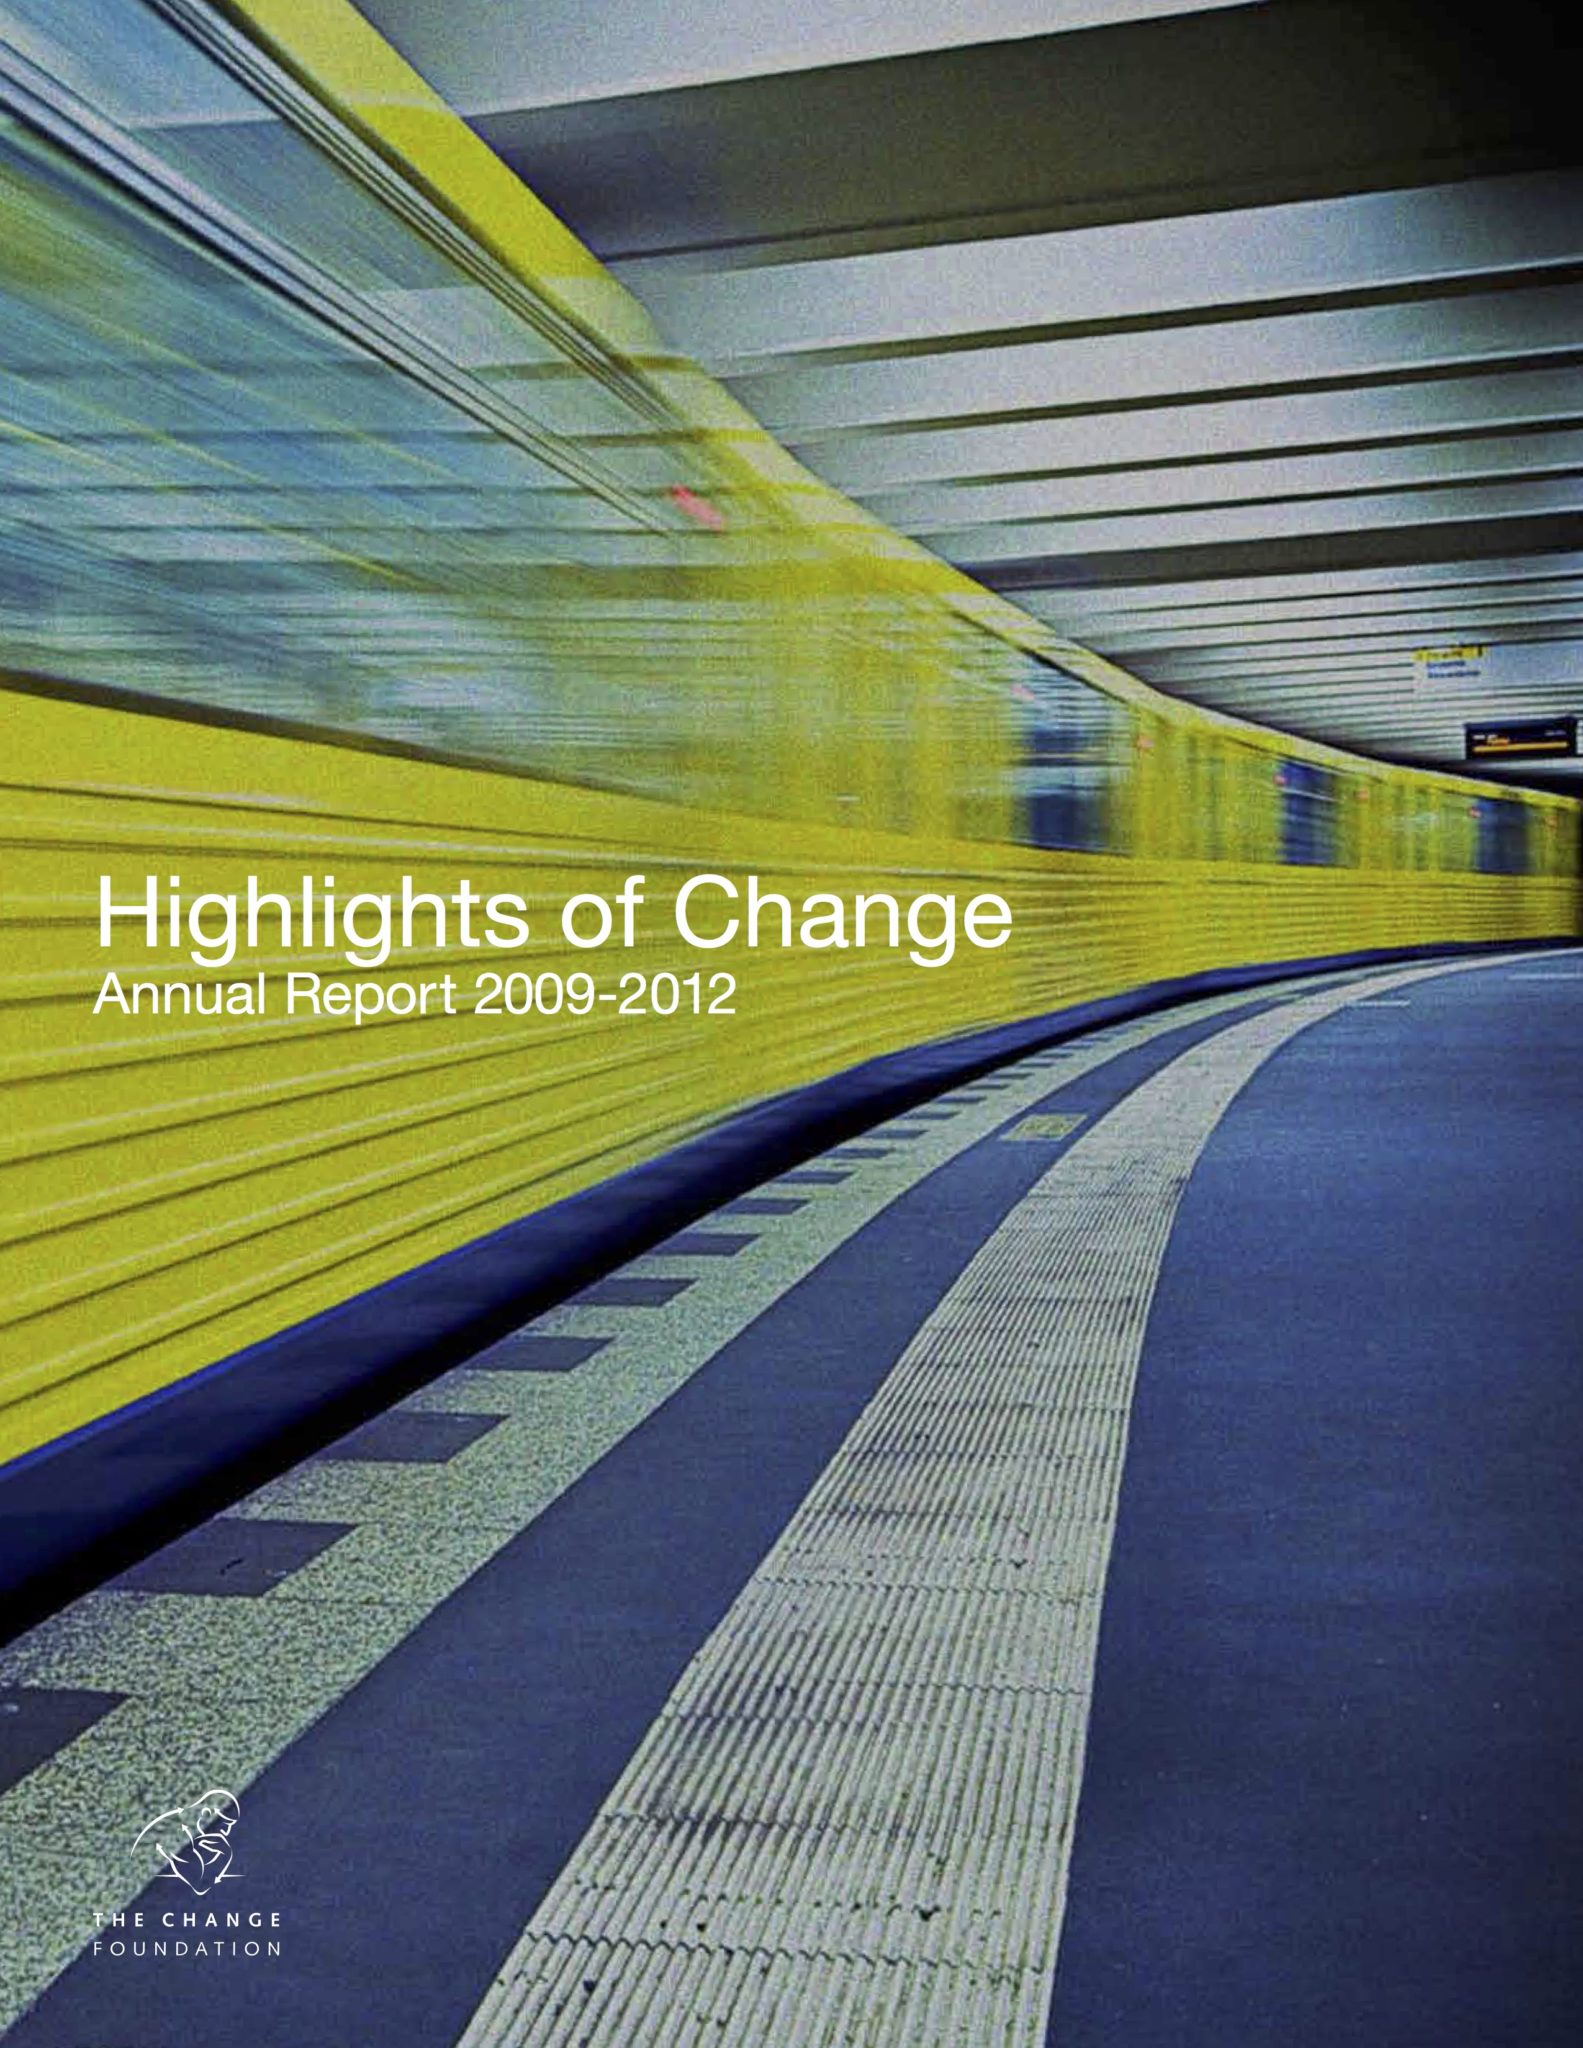 Highlights of Change, Annual Report 2009-2012: Microsite